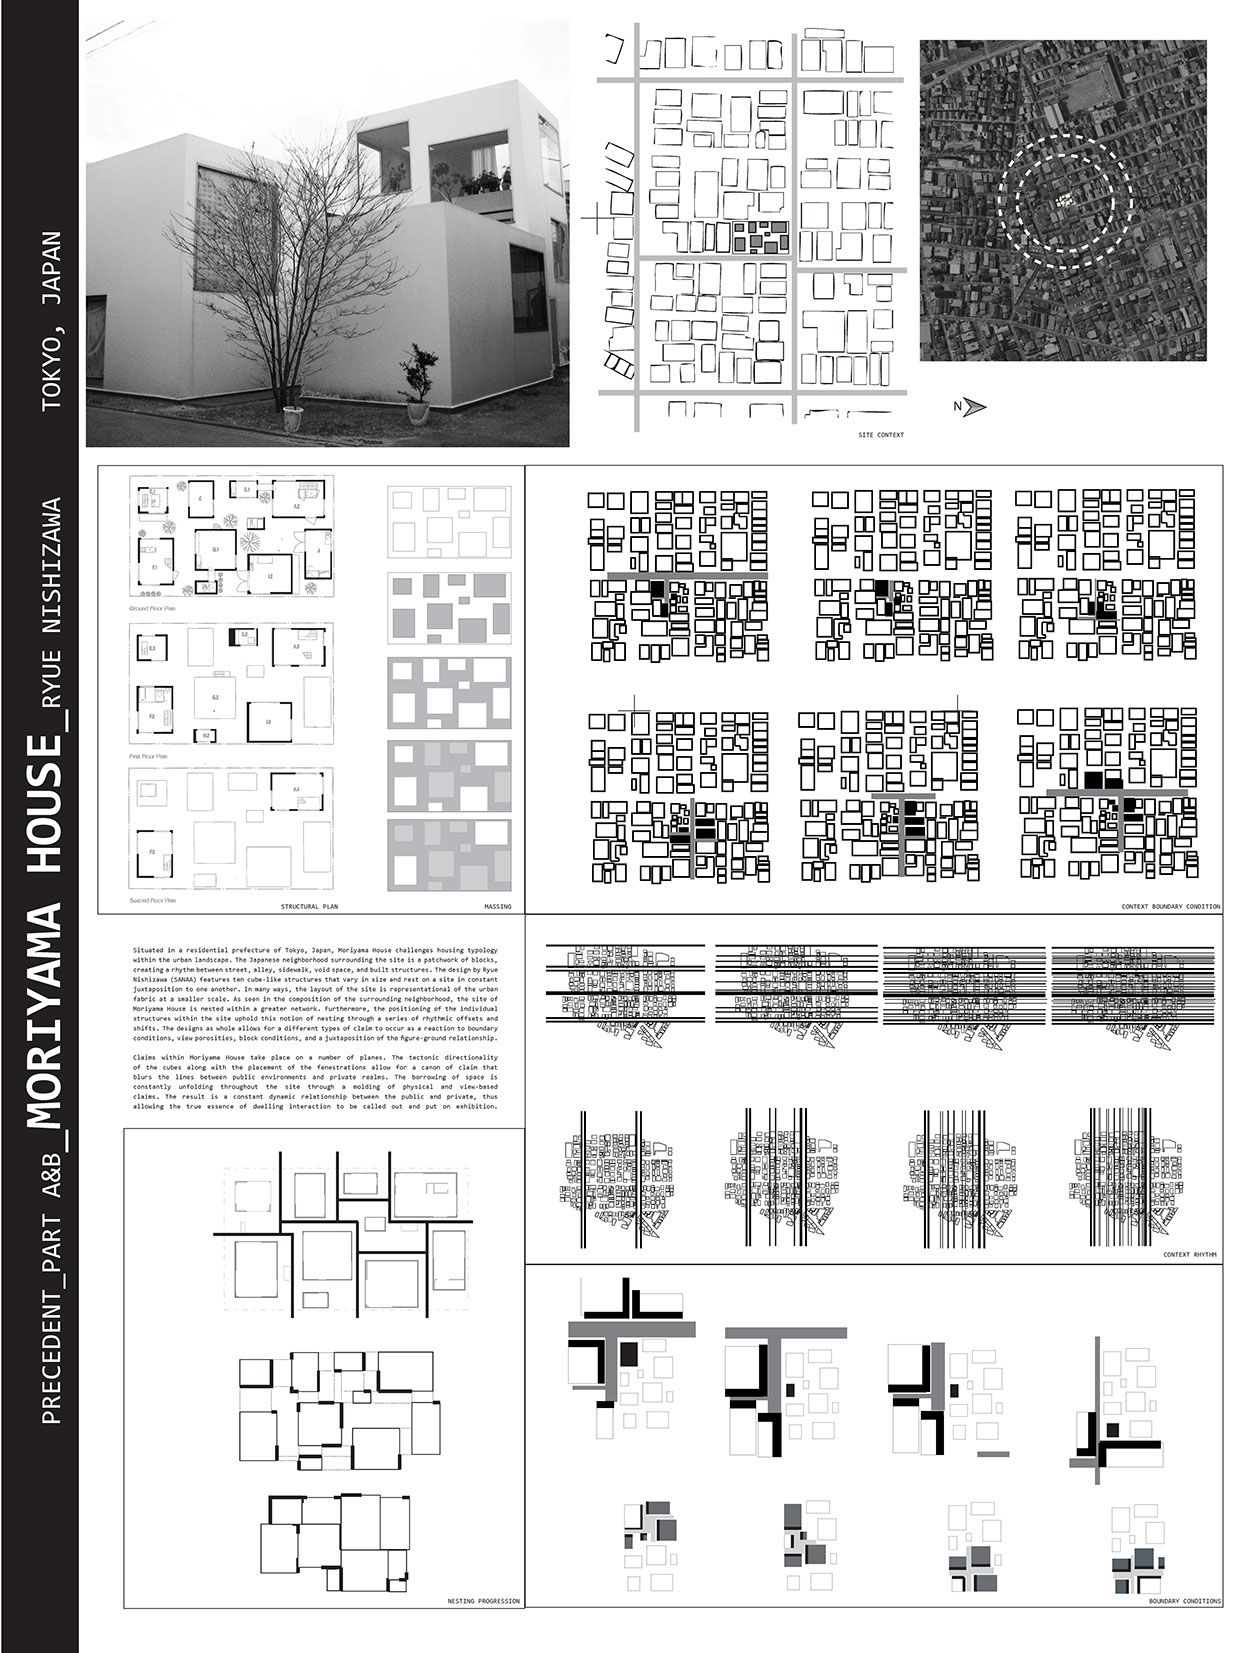 Systematic studies of Moriyama House. In collaboration